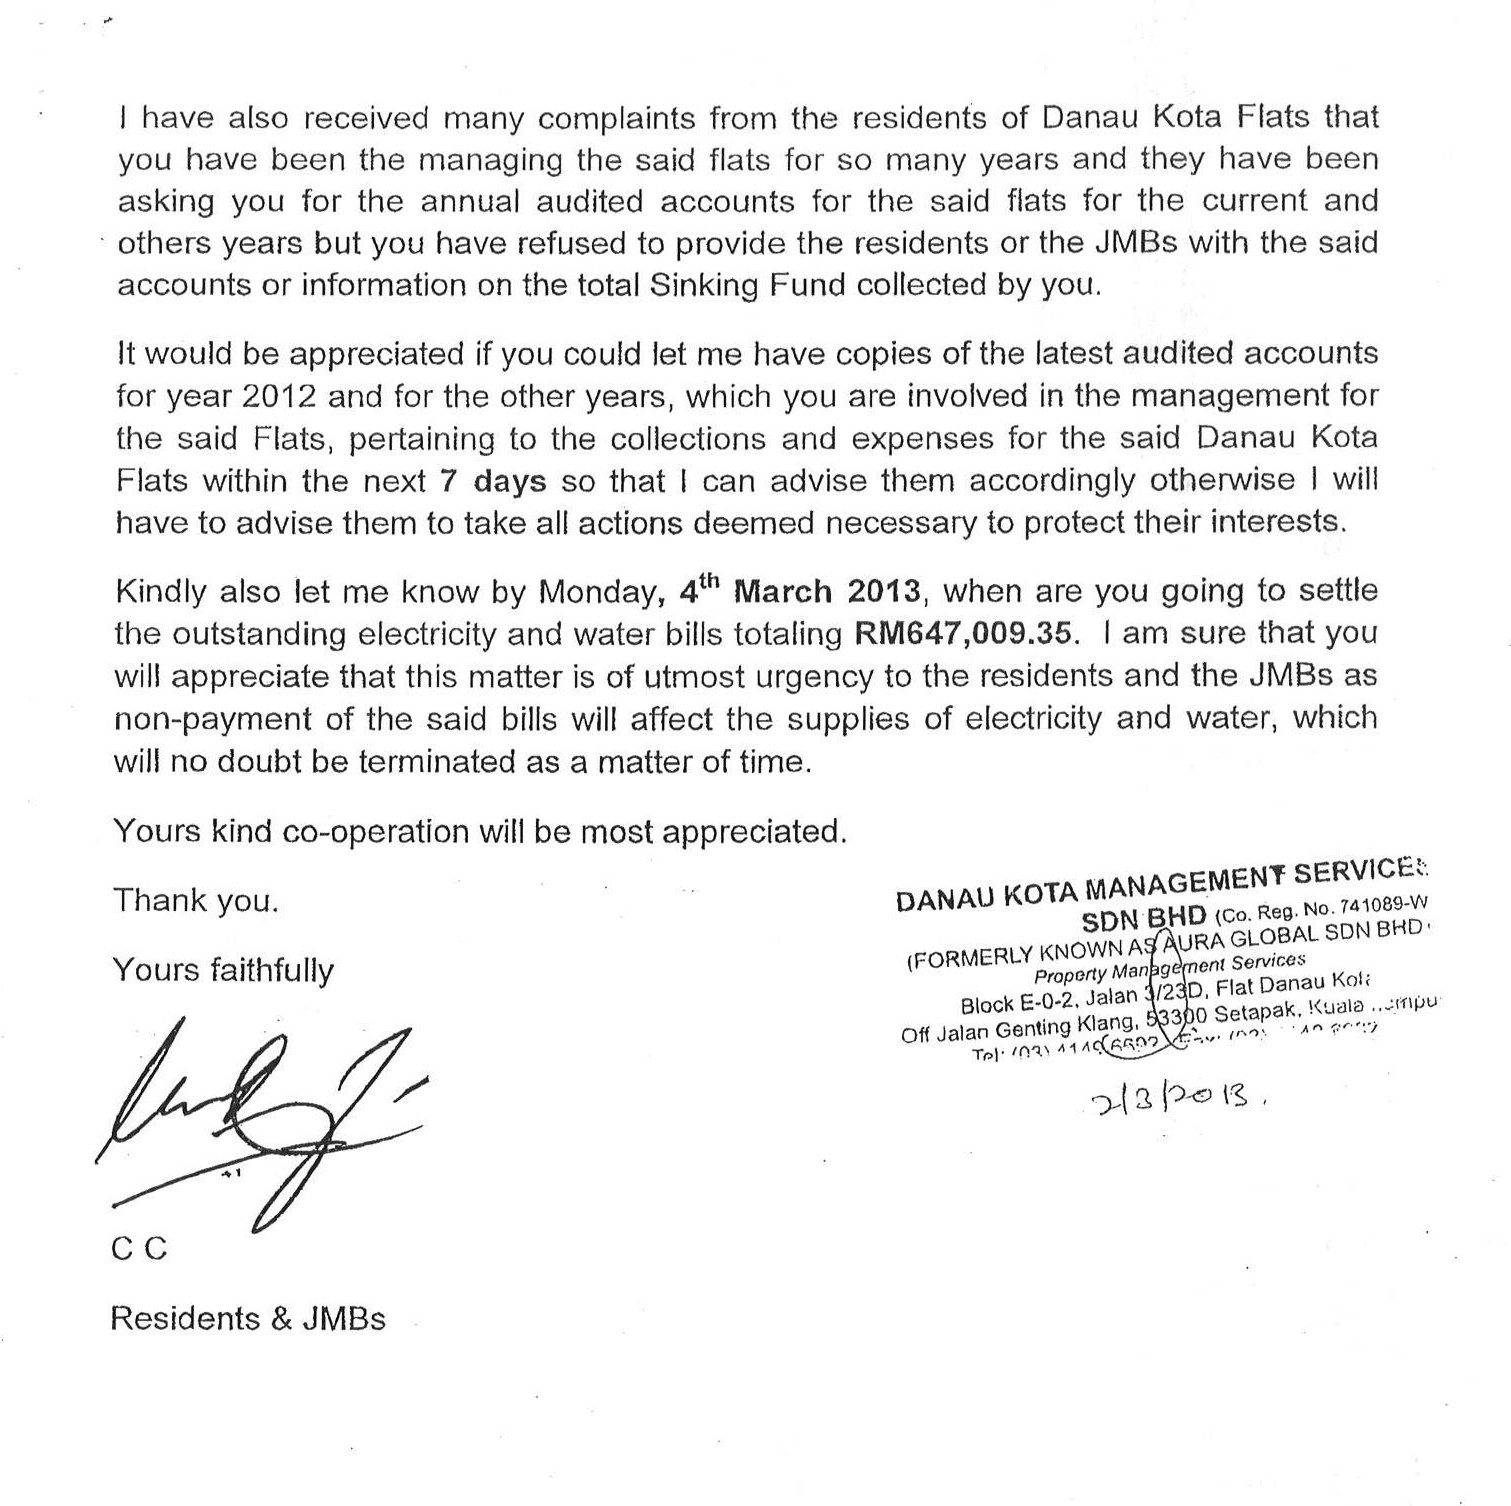 Yeshiva B nei Torah      Building Campaign When Yours faithfully and when Yours sincerely in a business letter